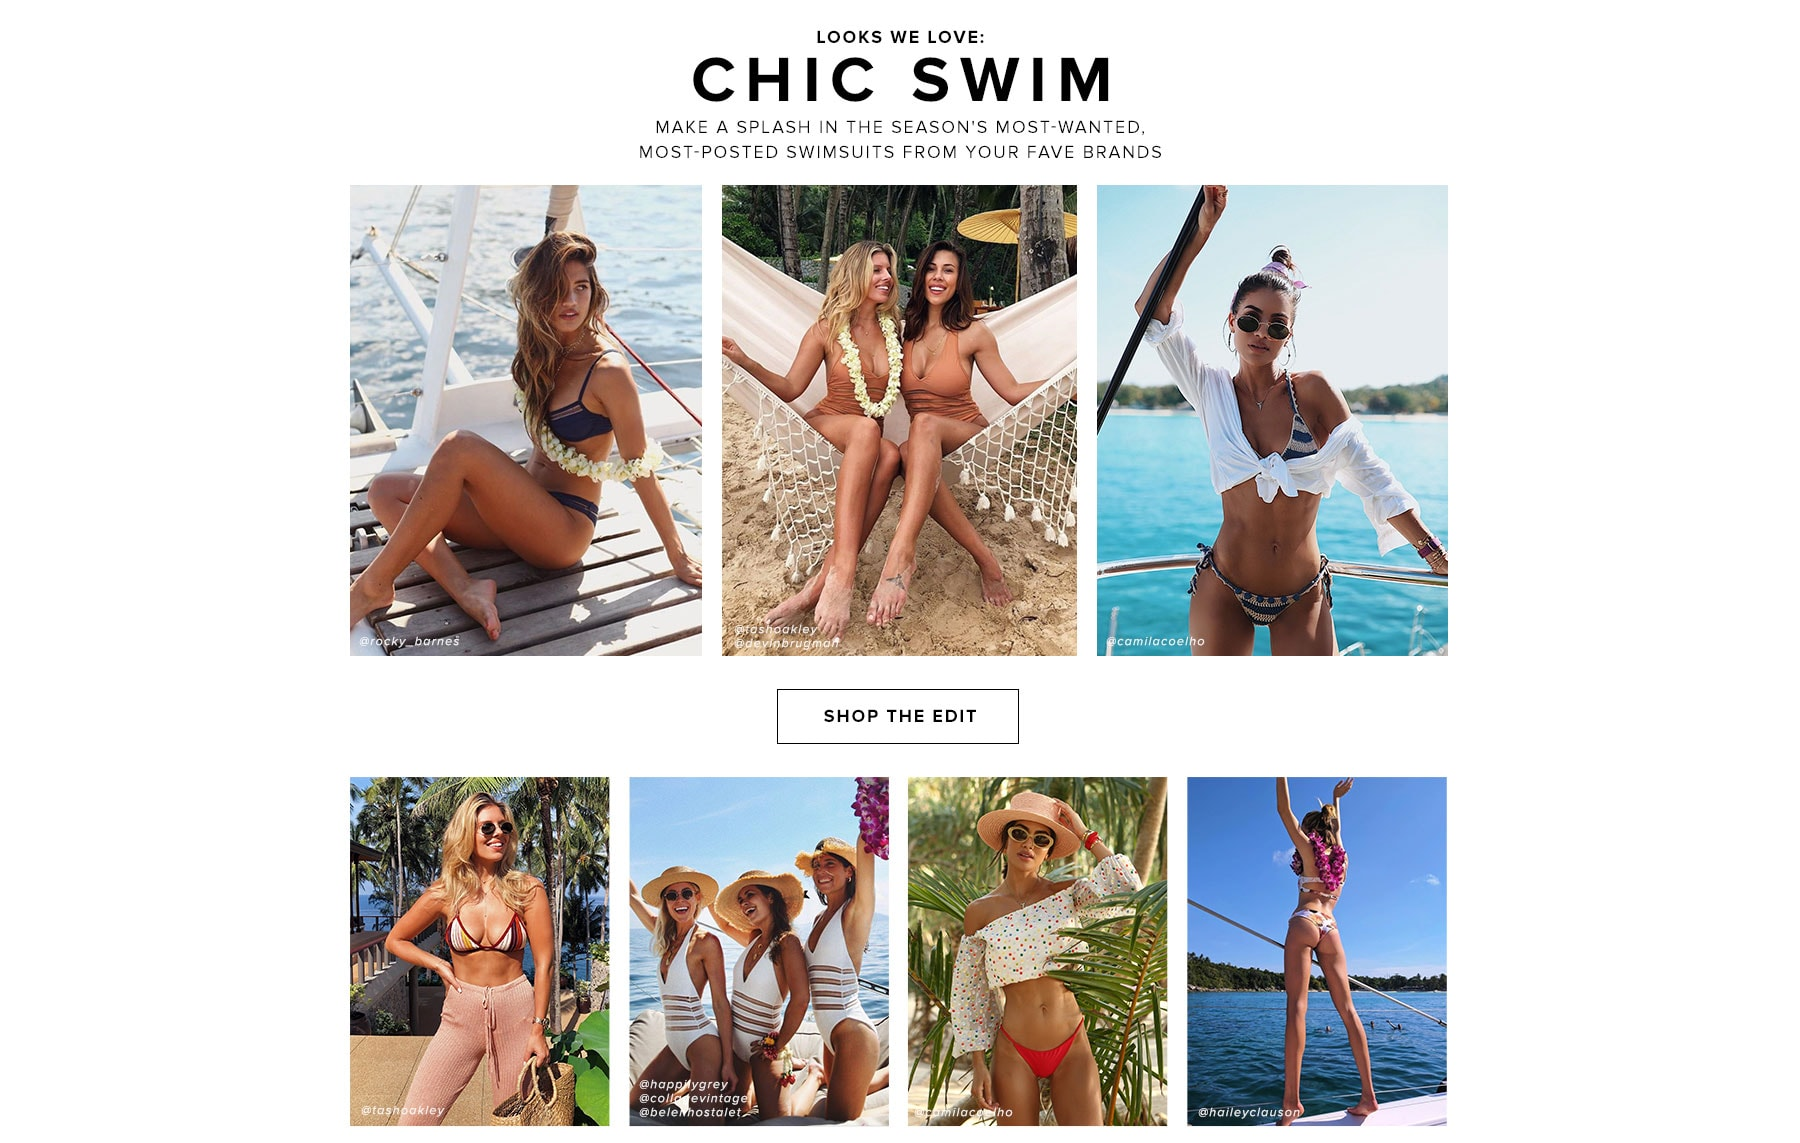 Looks we love: Chic Swim. Make a splash in the season's most-wanted, most-posted swimsuits from your fave brands. Shop the edit.